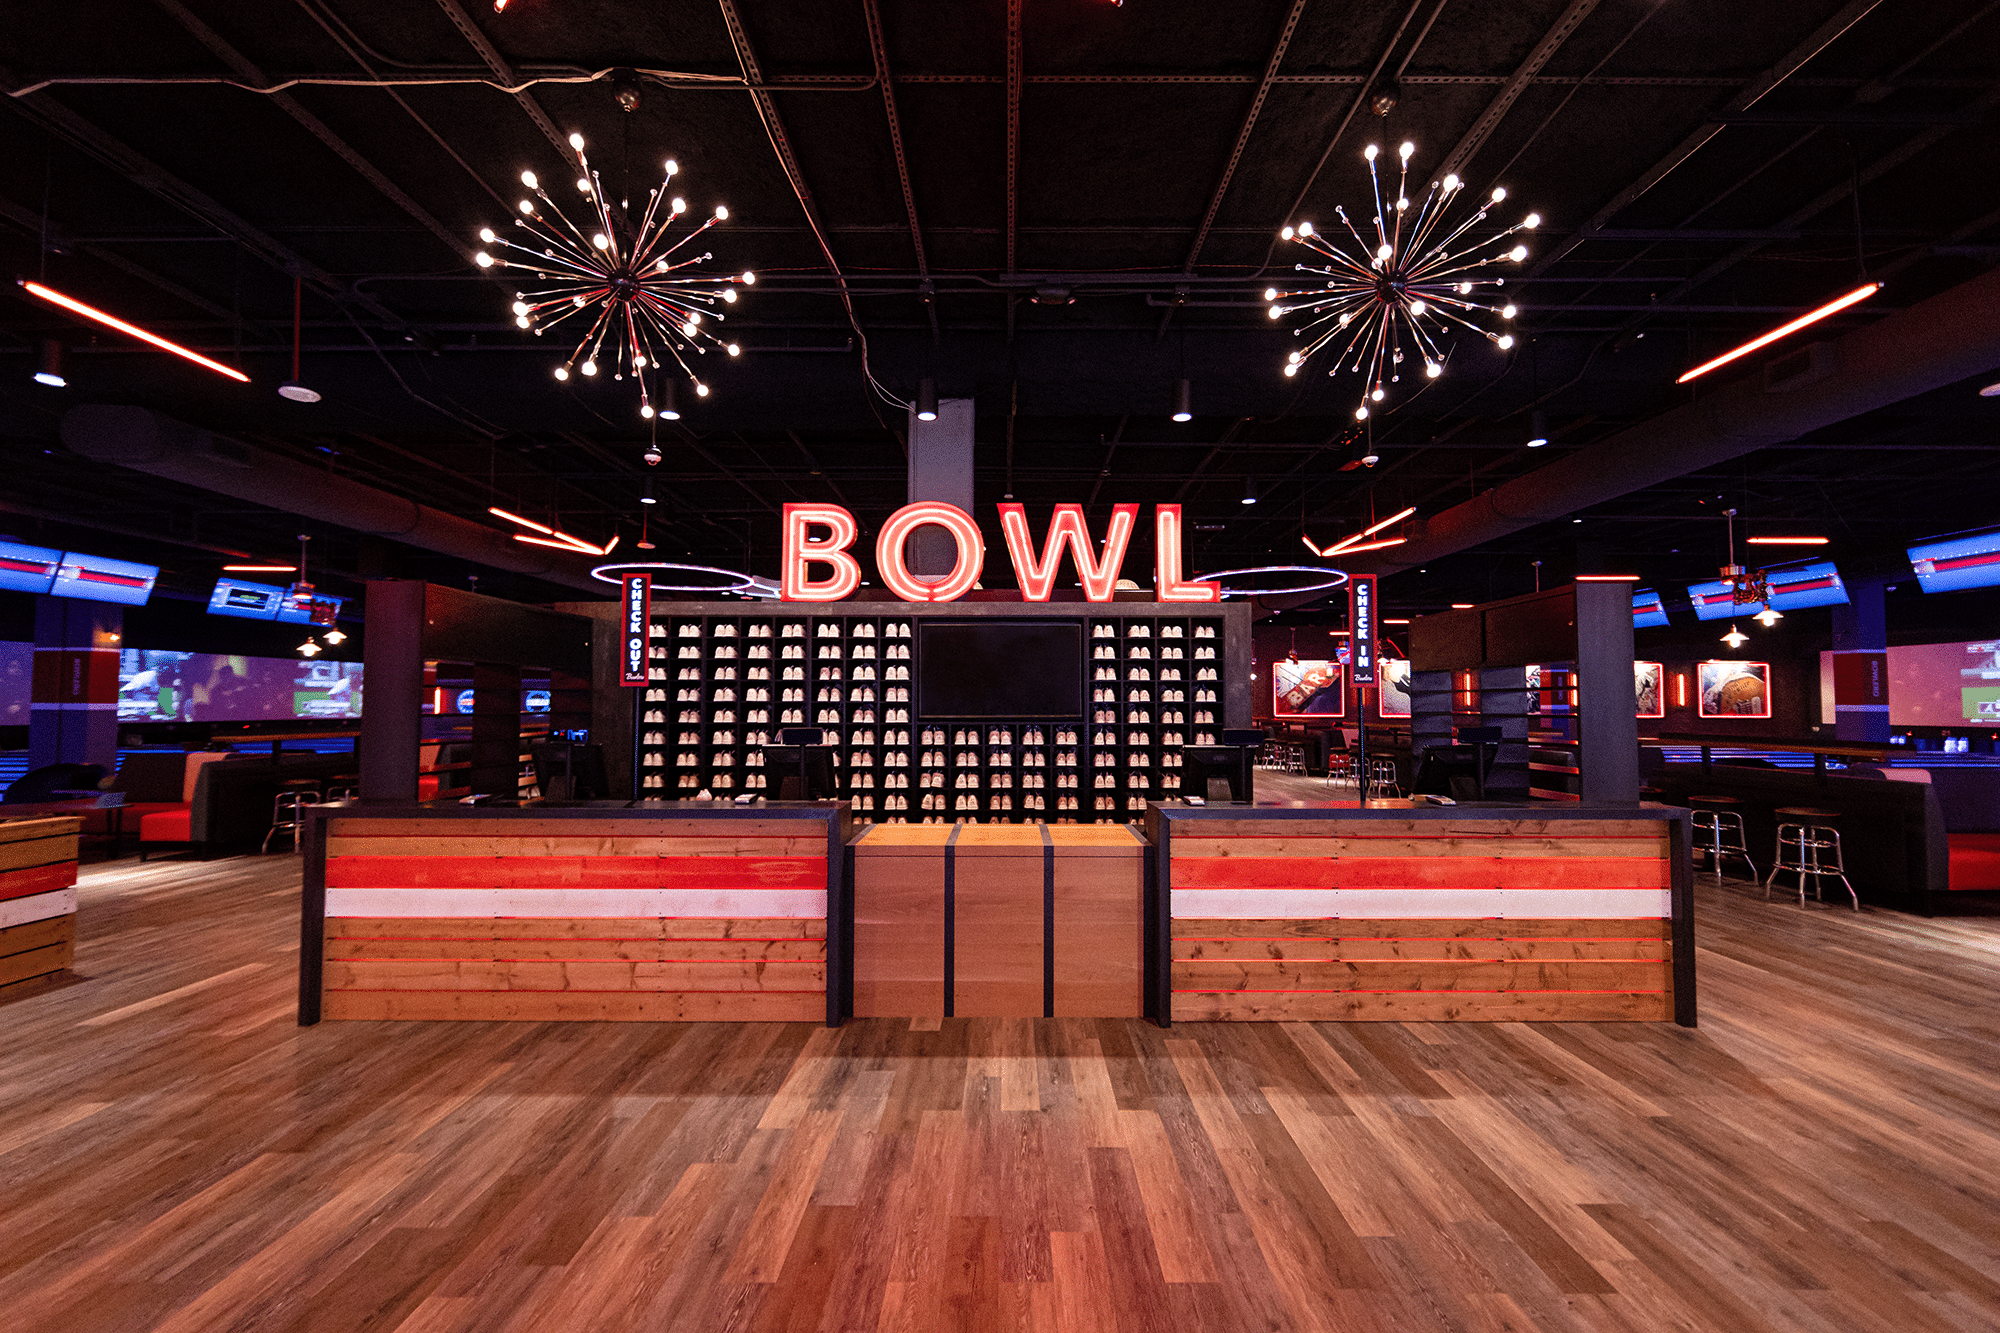 Bowl sign and front desk at bowling alley.